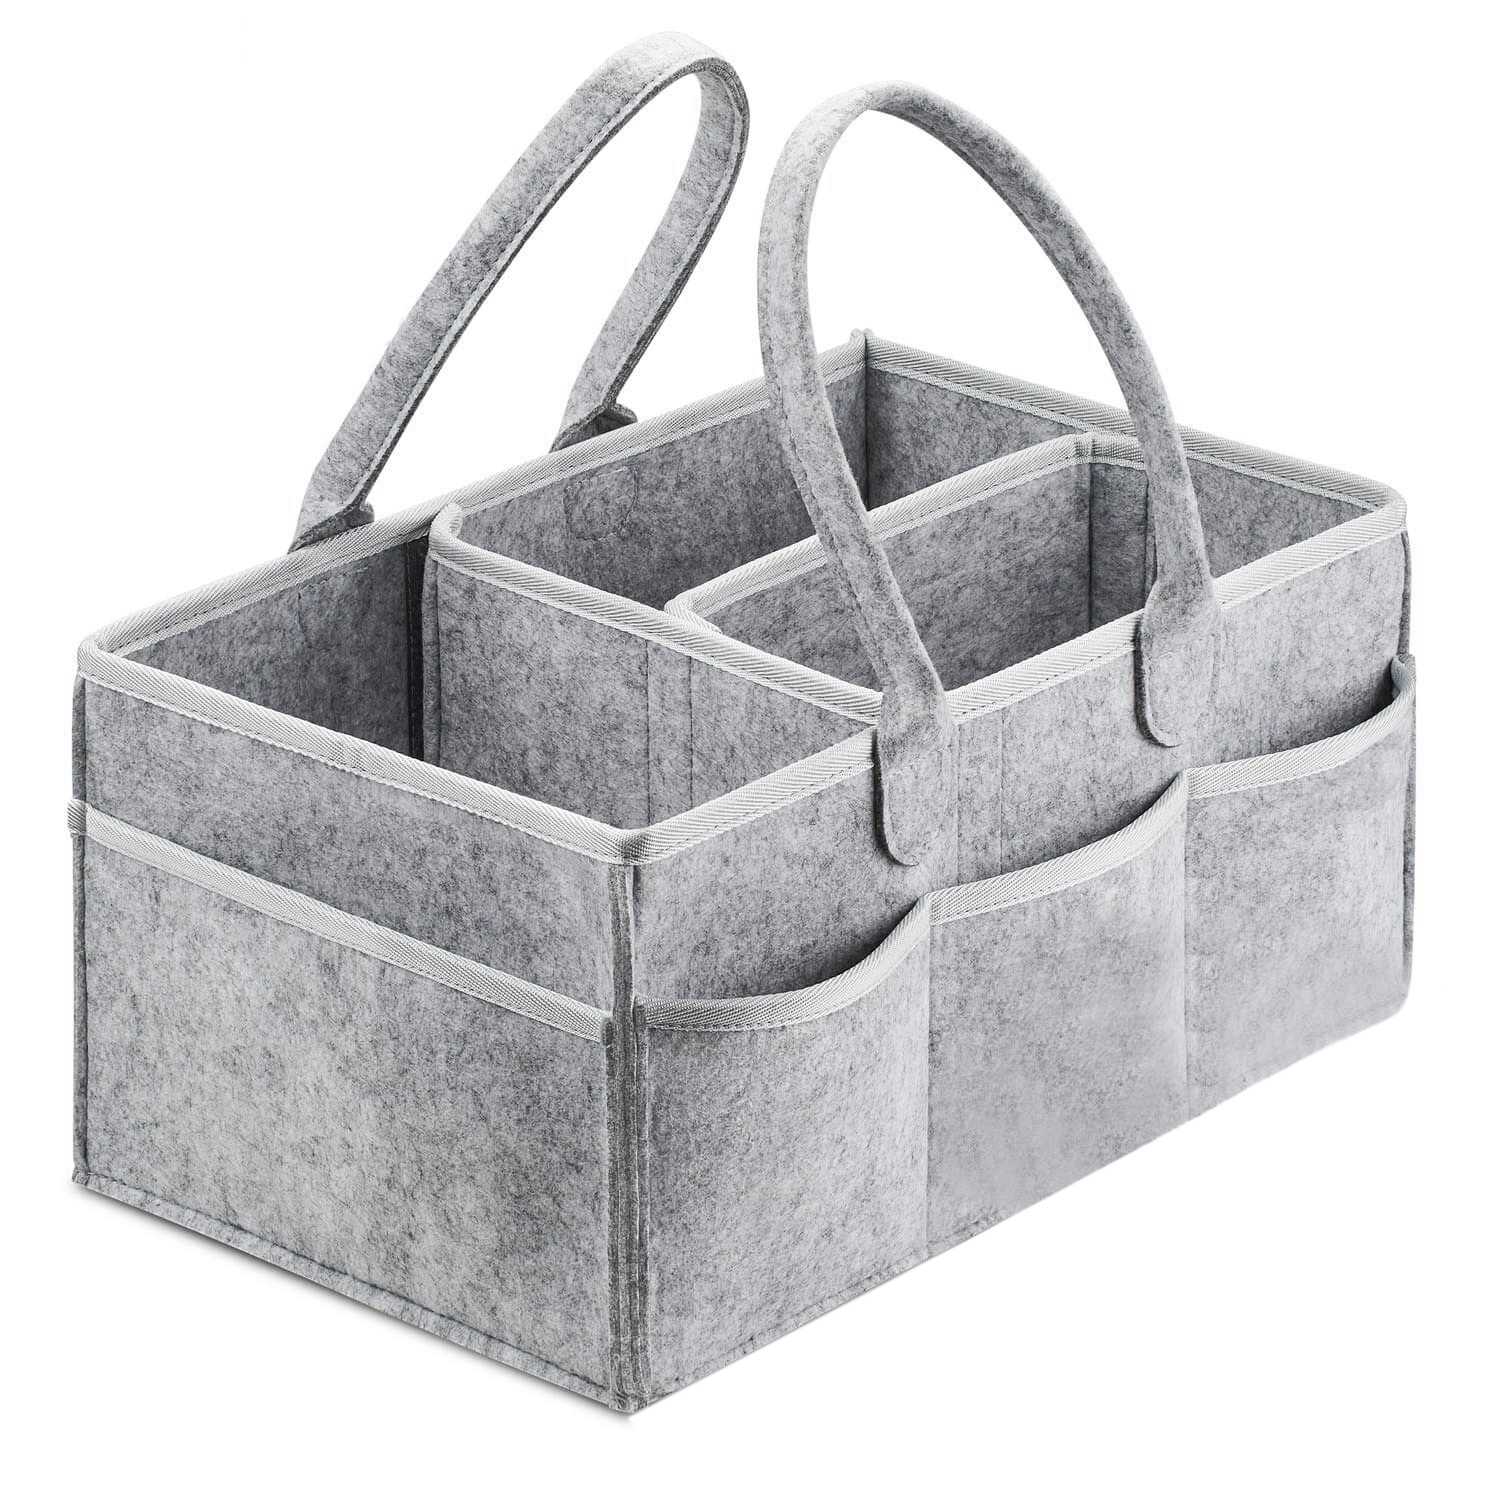 Baby Diaper Caddy Organizer Portable Holder Bag for Changing Table and Car Nursery Essentials Storage bins Baby Diaper Caddy Organizer Portable Holder Bag for Changing Table and Car, Nursery Essentials Storage bins 38*23*18cm